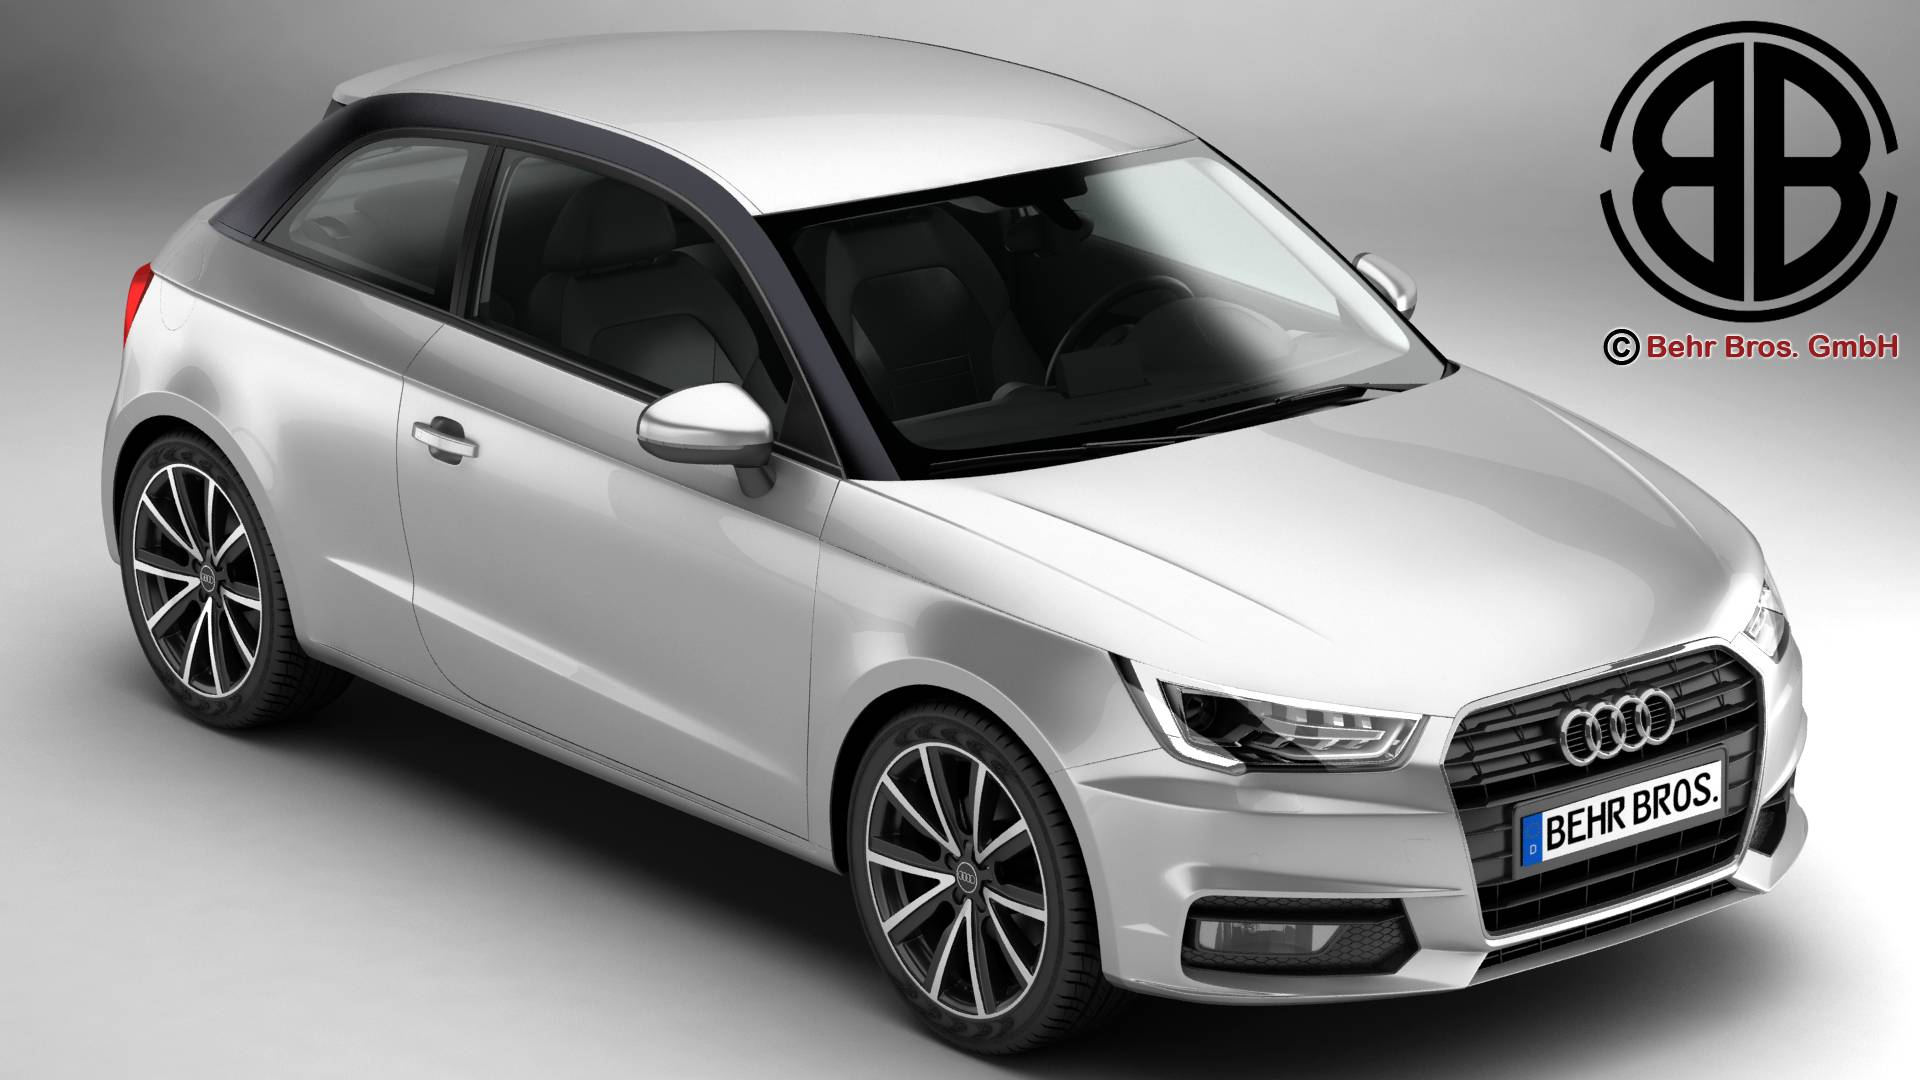 Audi a1 2015 3d model 3ds max fbx c4d le do thoil 214695